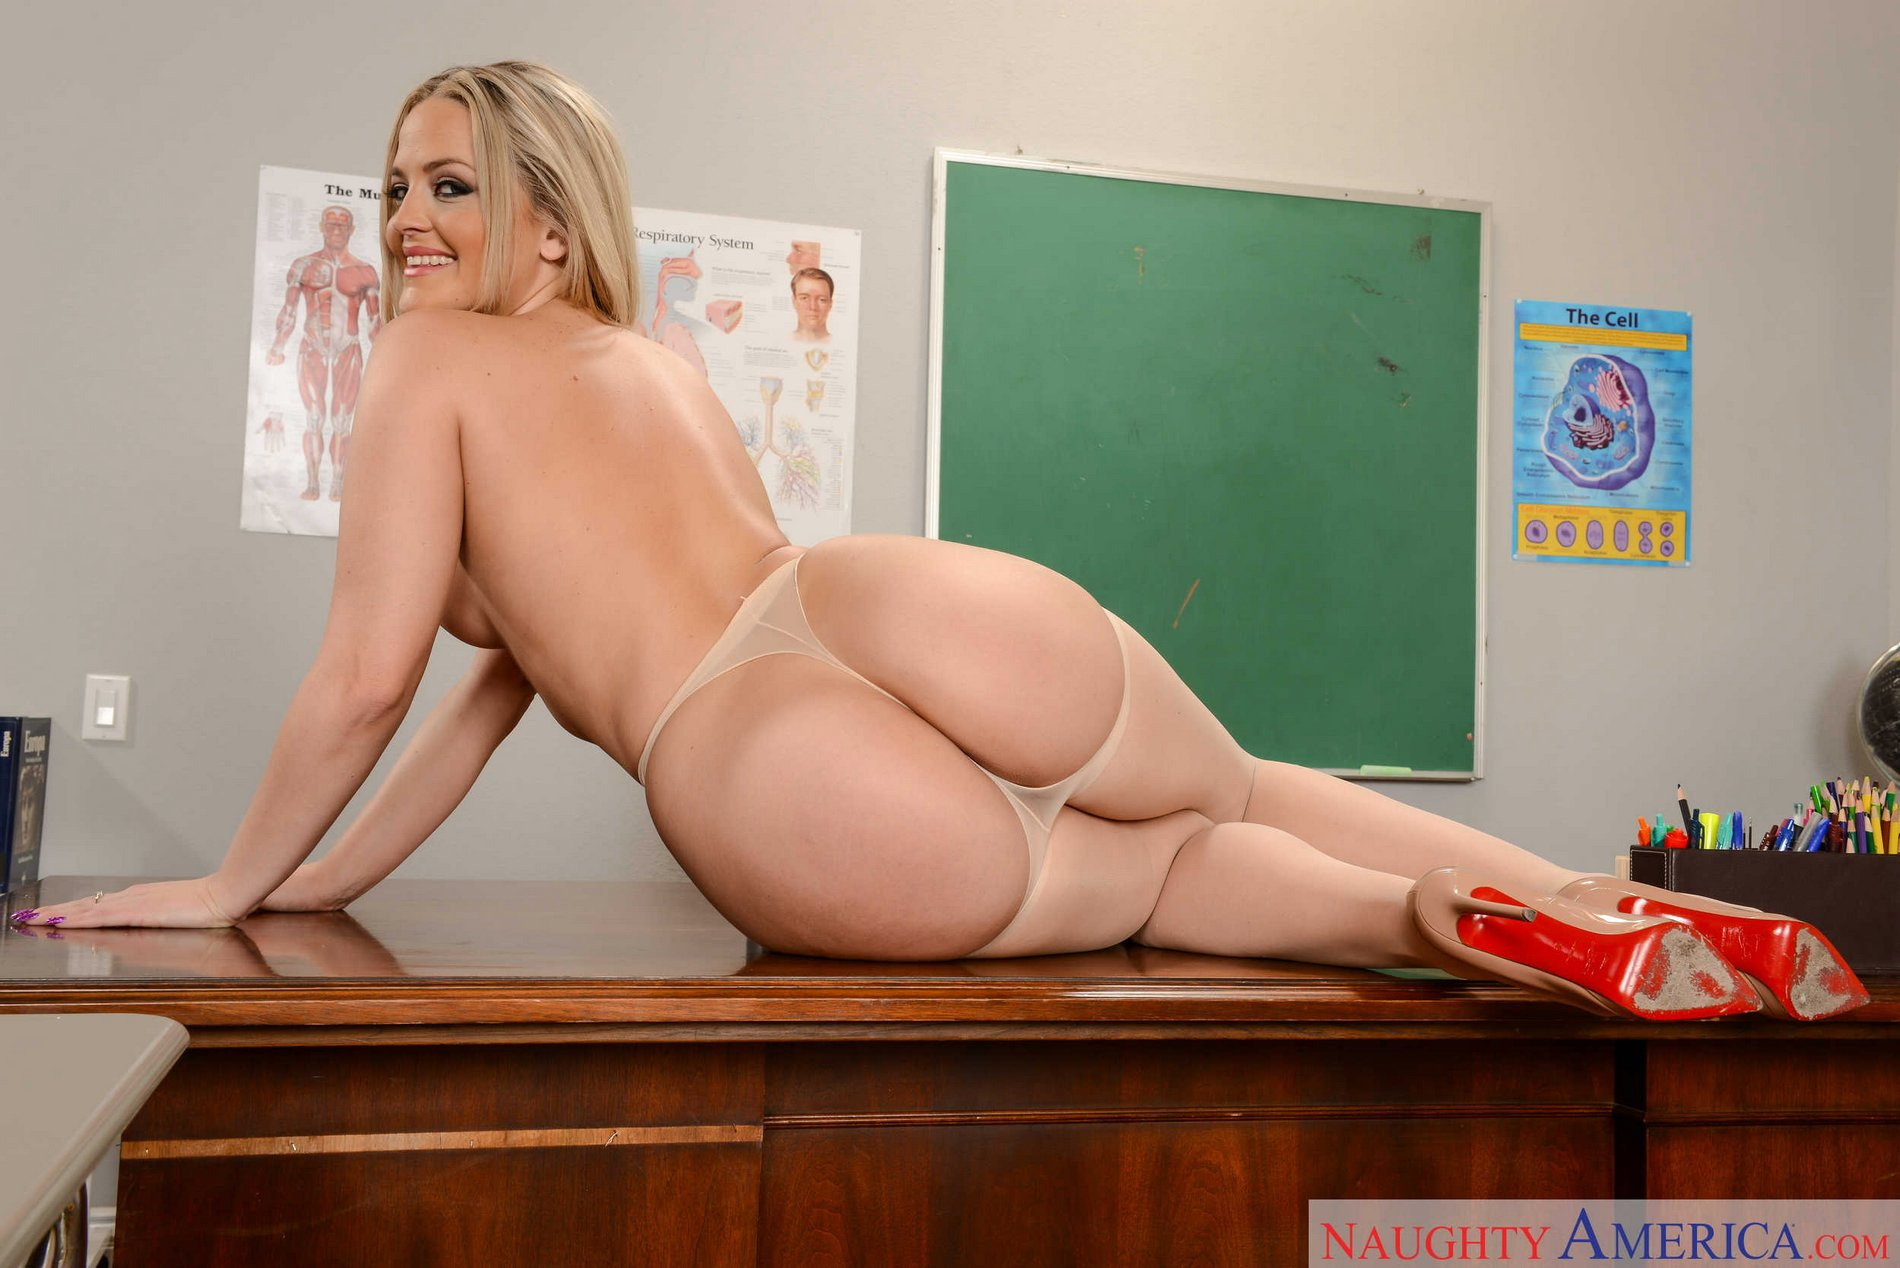 alexis texas pantyhose sex